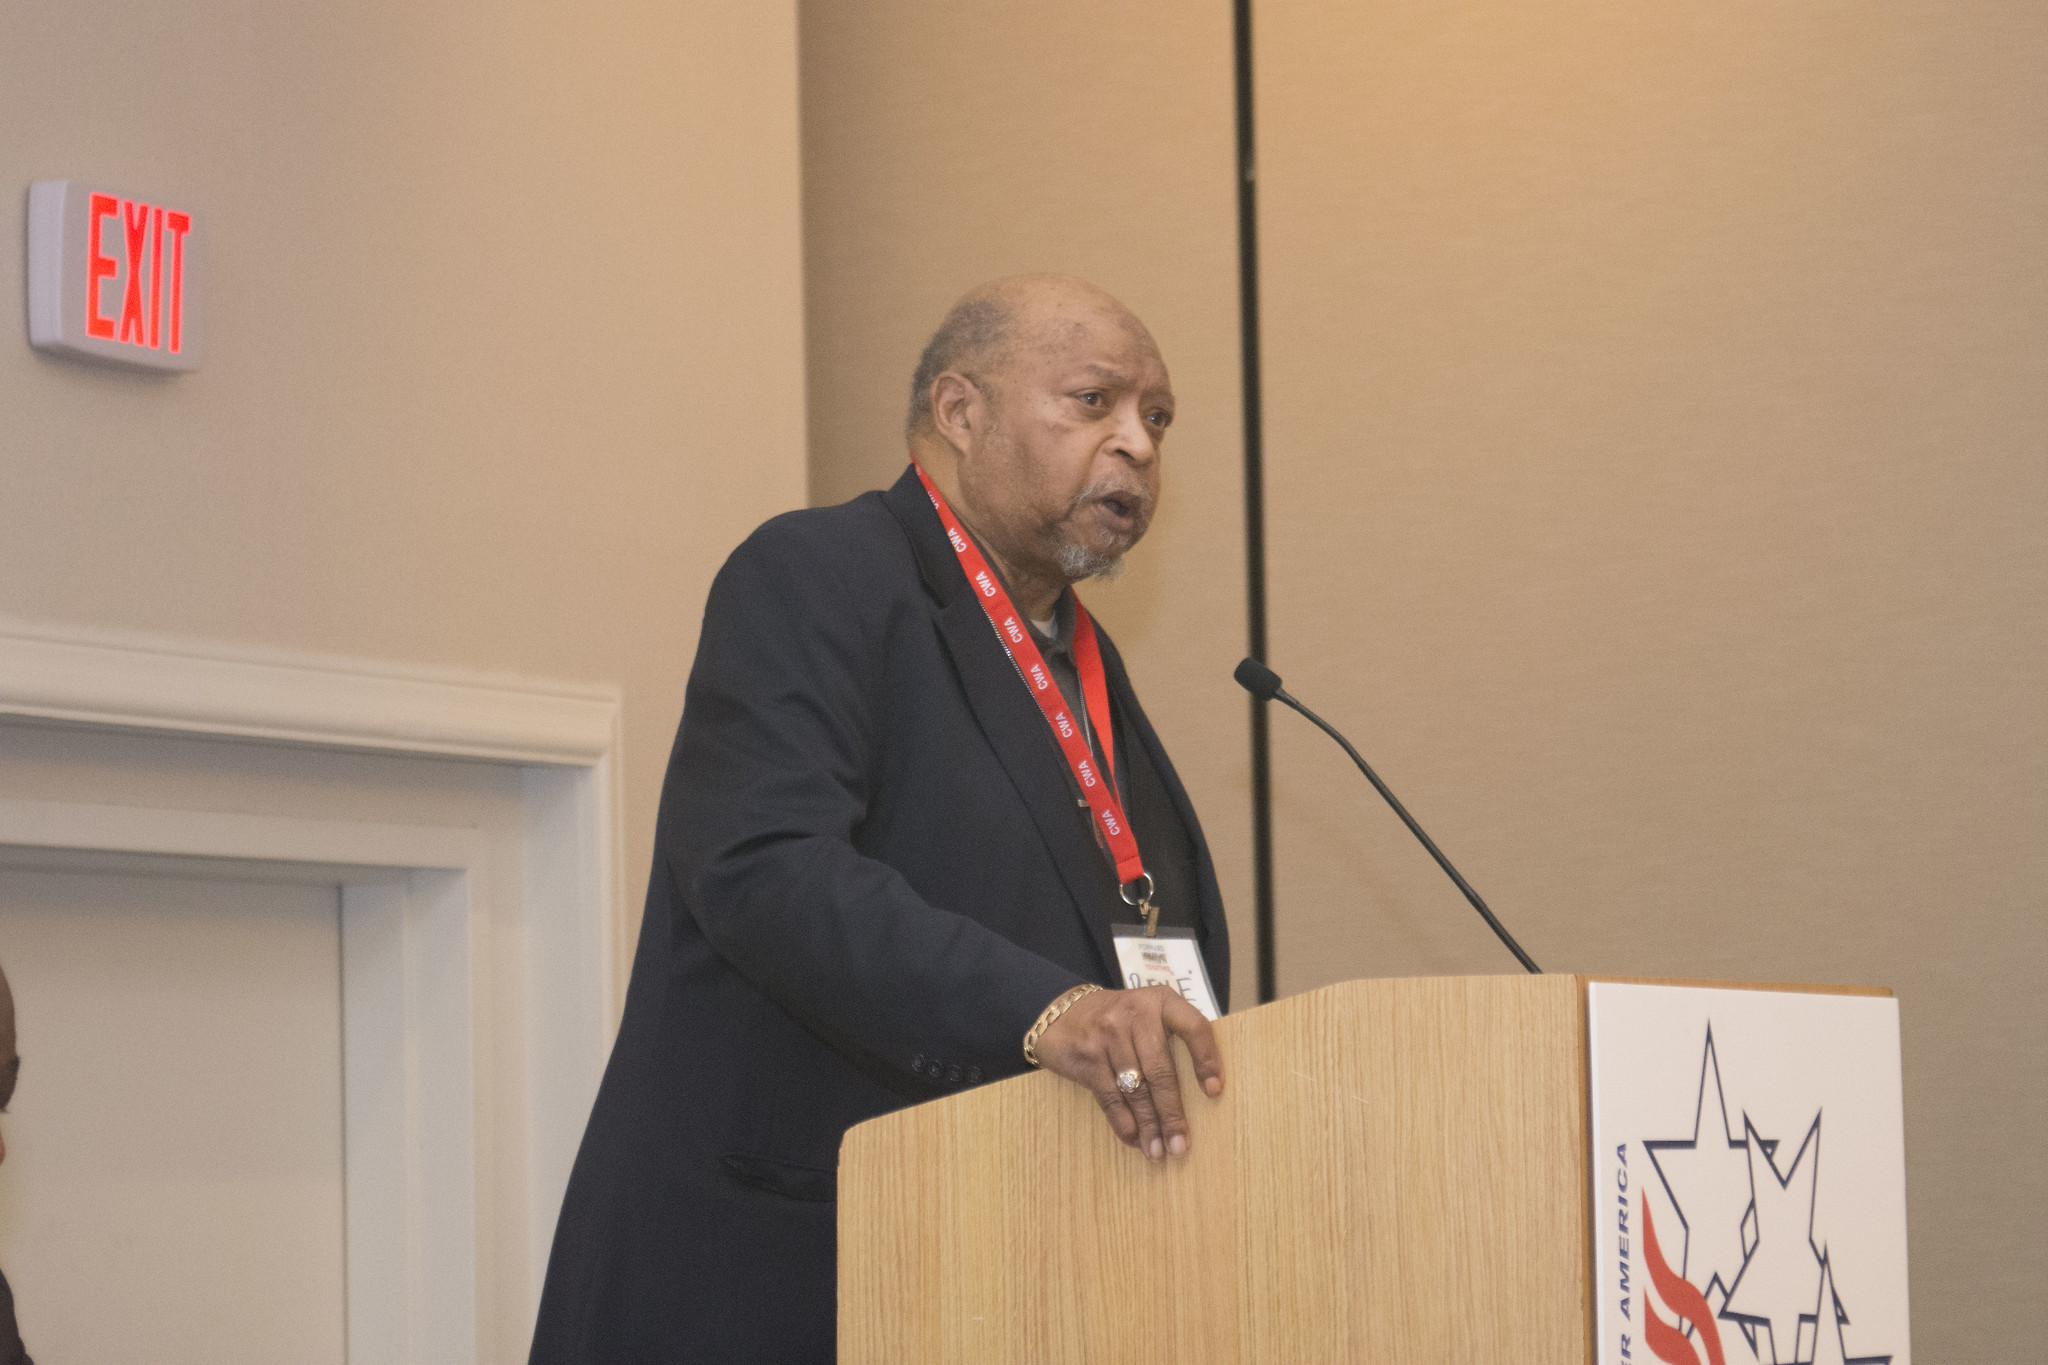 Rev. E. at the 2017 Public, Healthcare, and Education Workers Conference